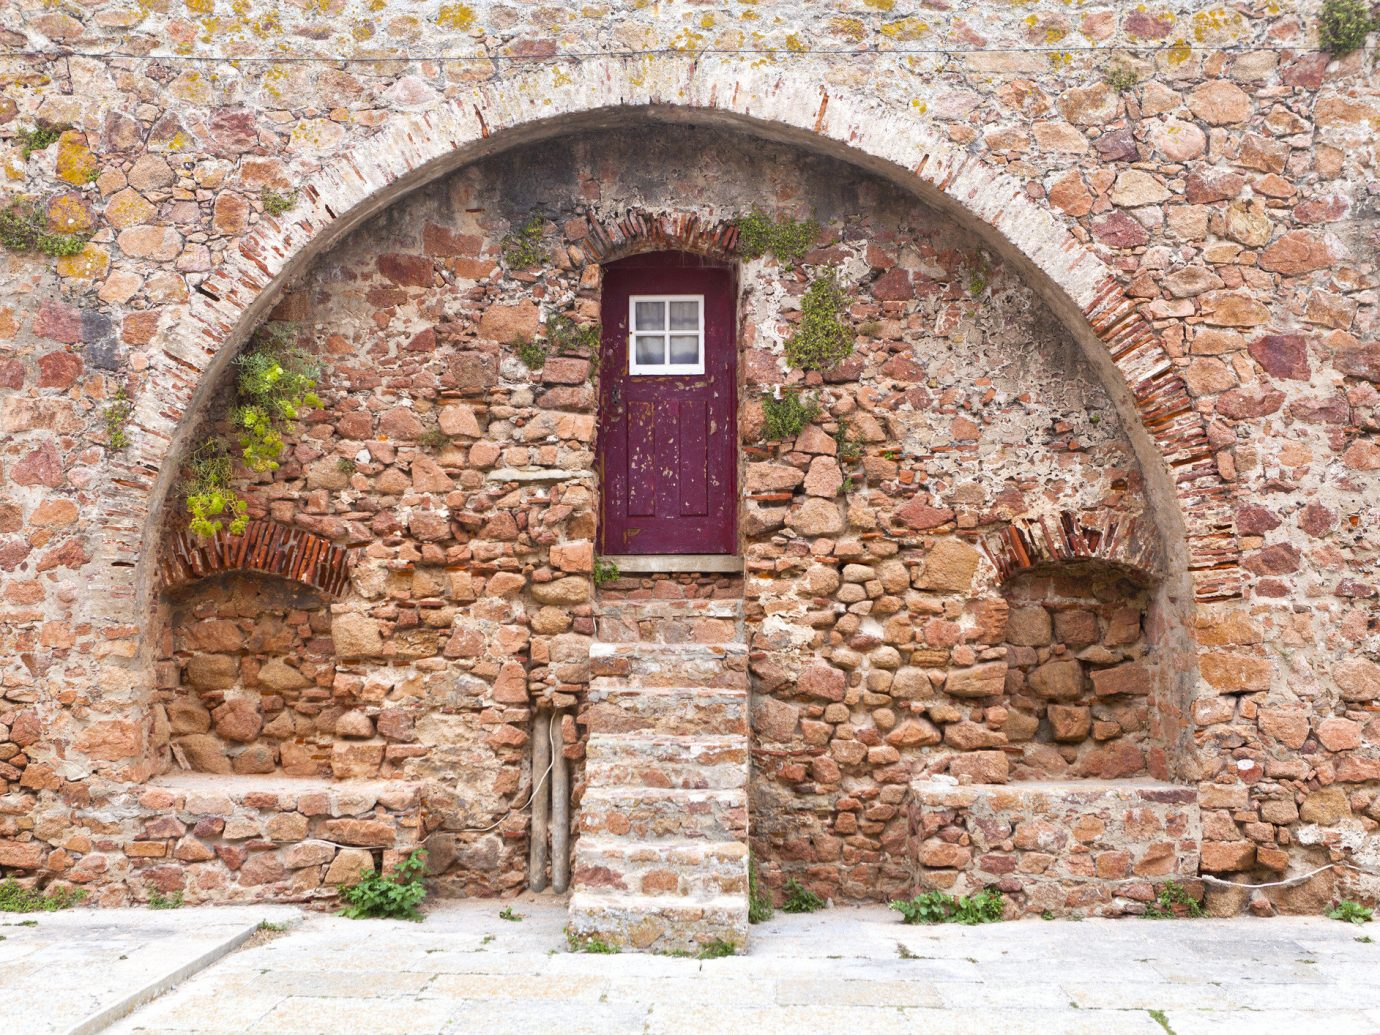 Offbeat brick building ground stone outdoor wall arch brickwork Ruins monastery rock chapel ancient history estate cottage stone wall Village material building material walkway